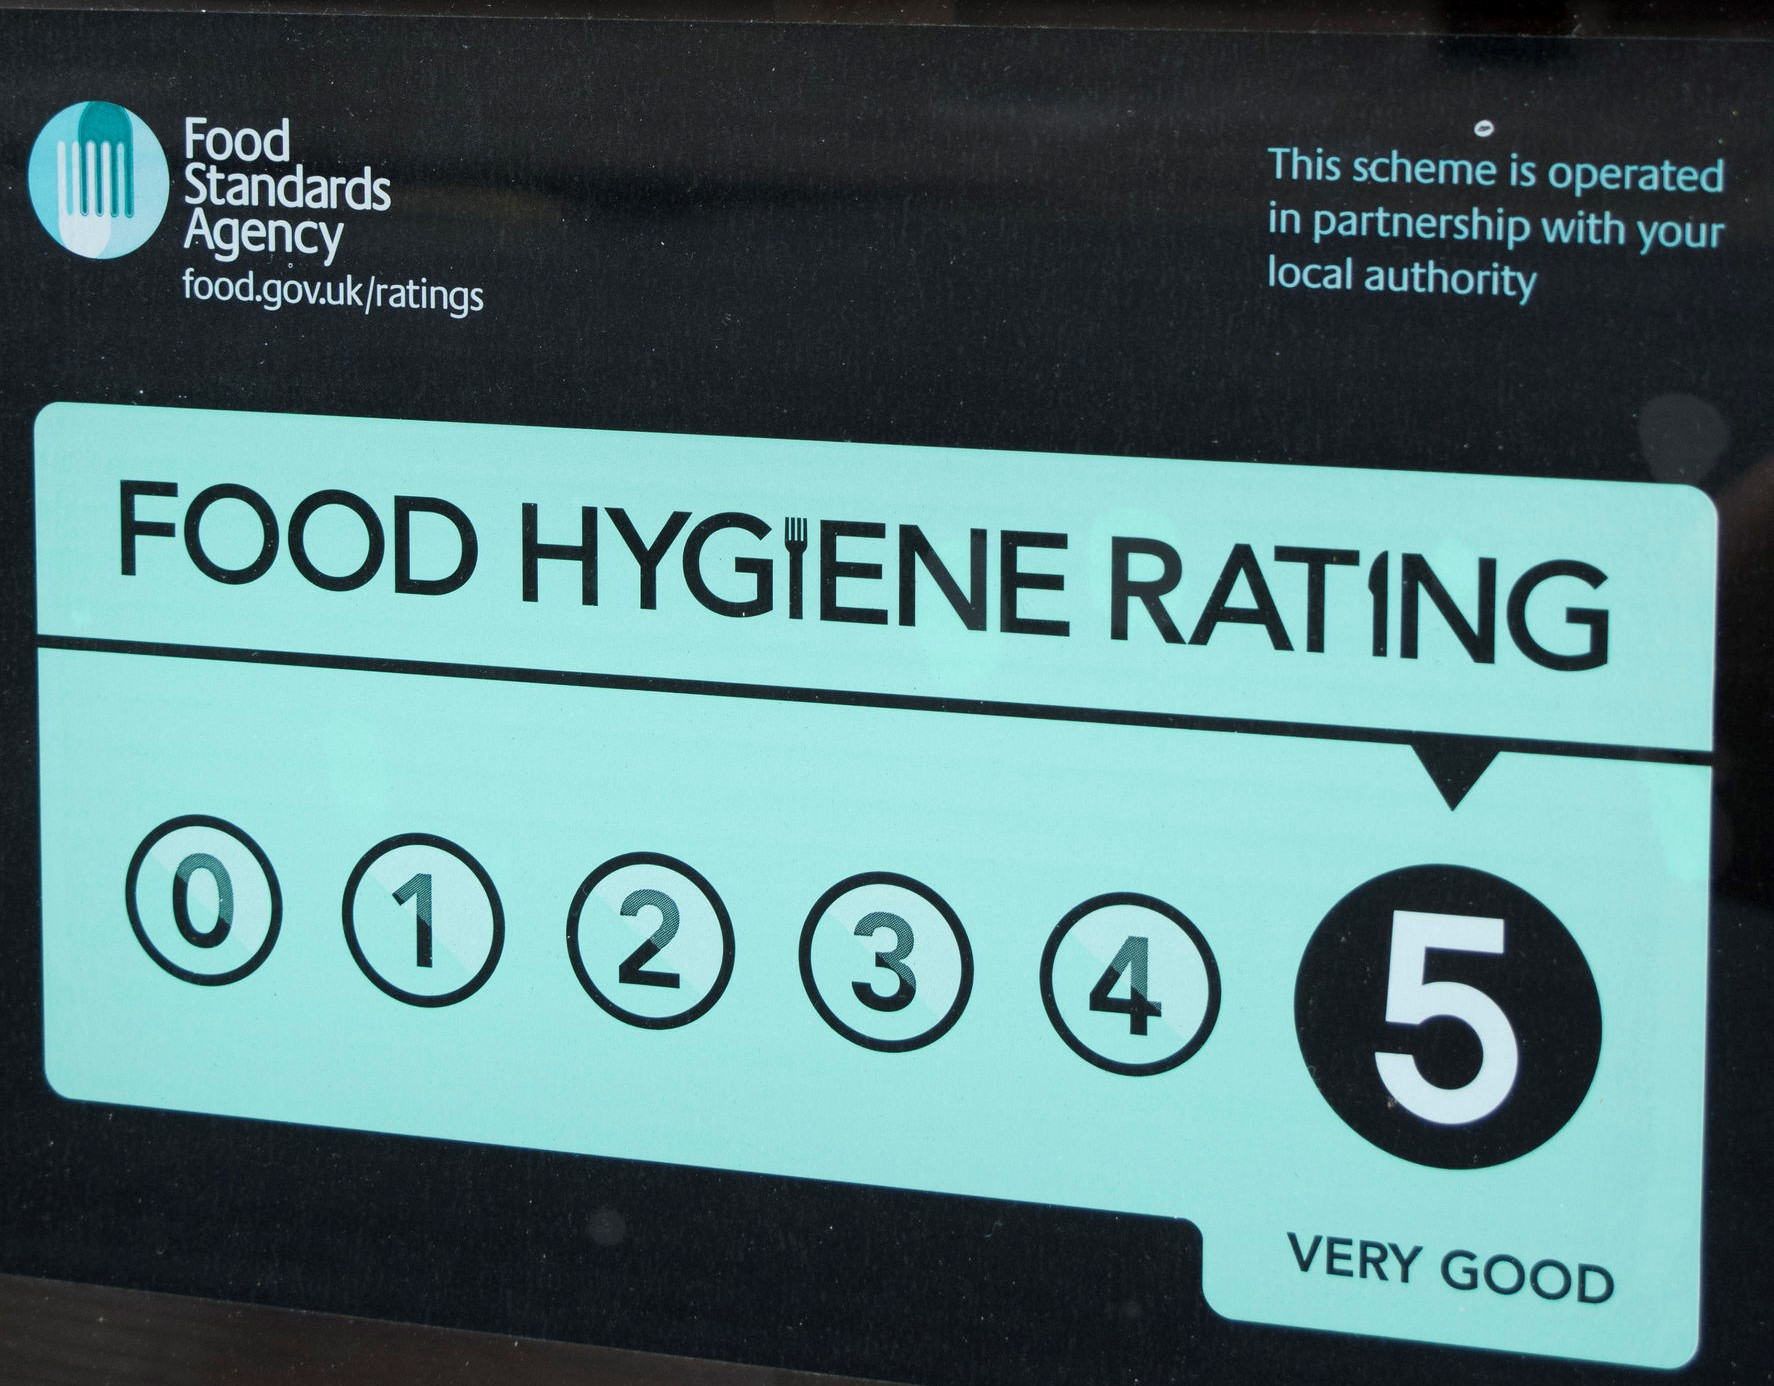 All about the food hygiene rating scheme